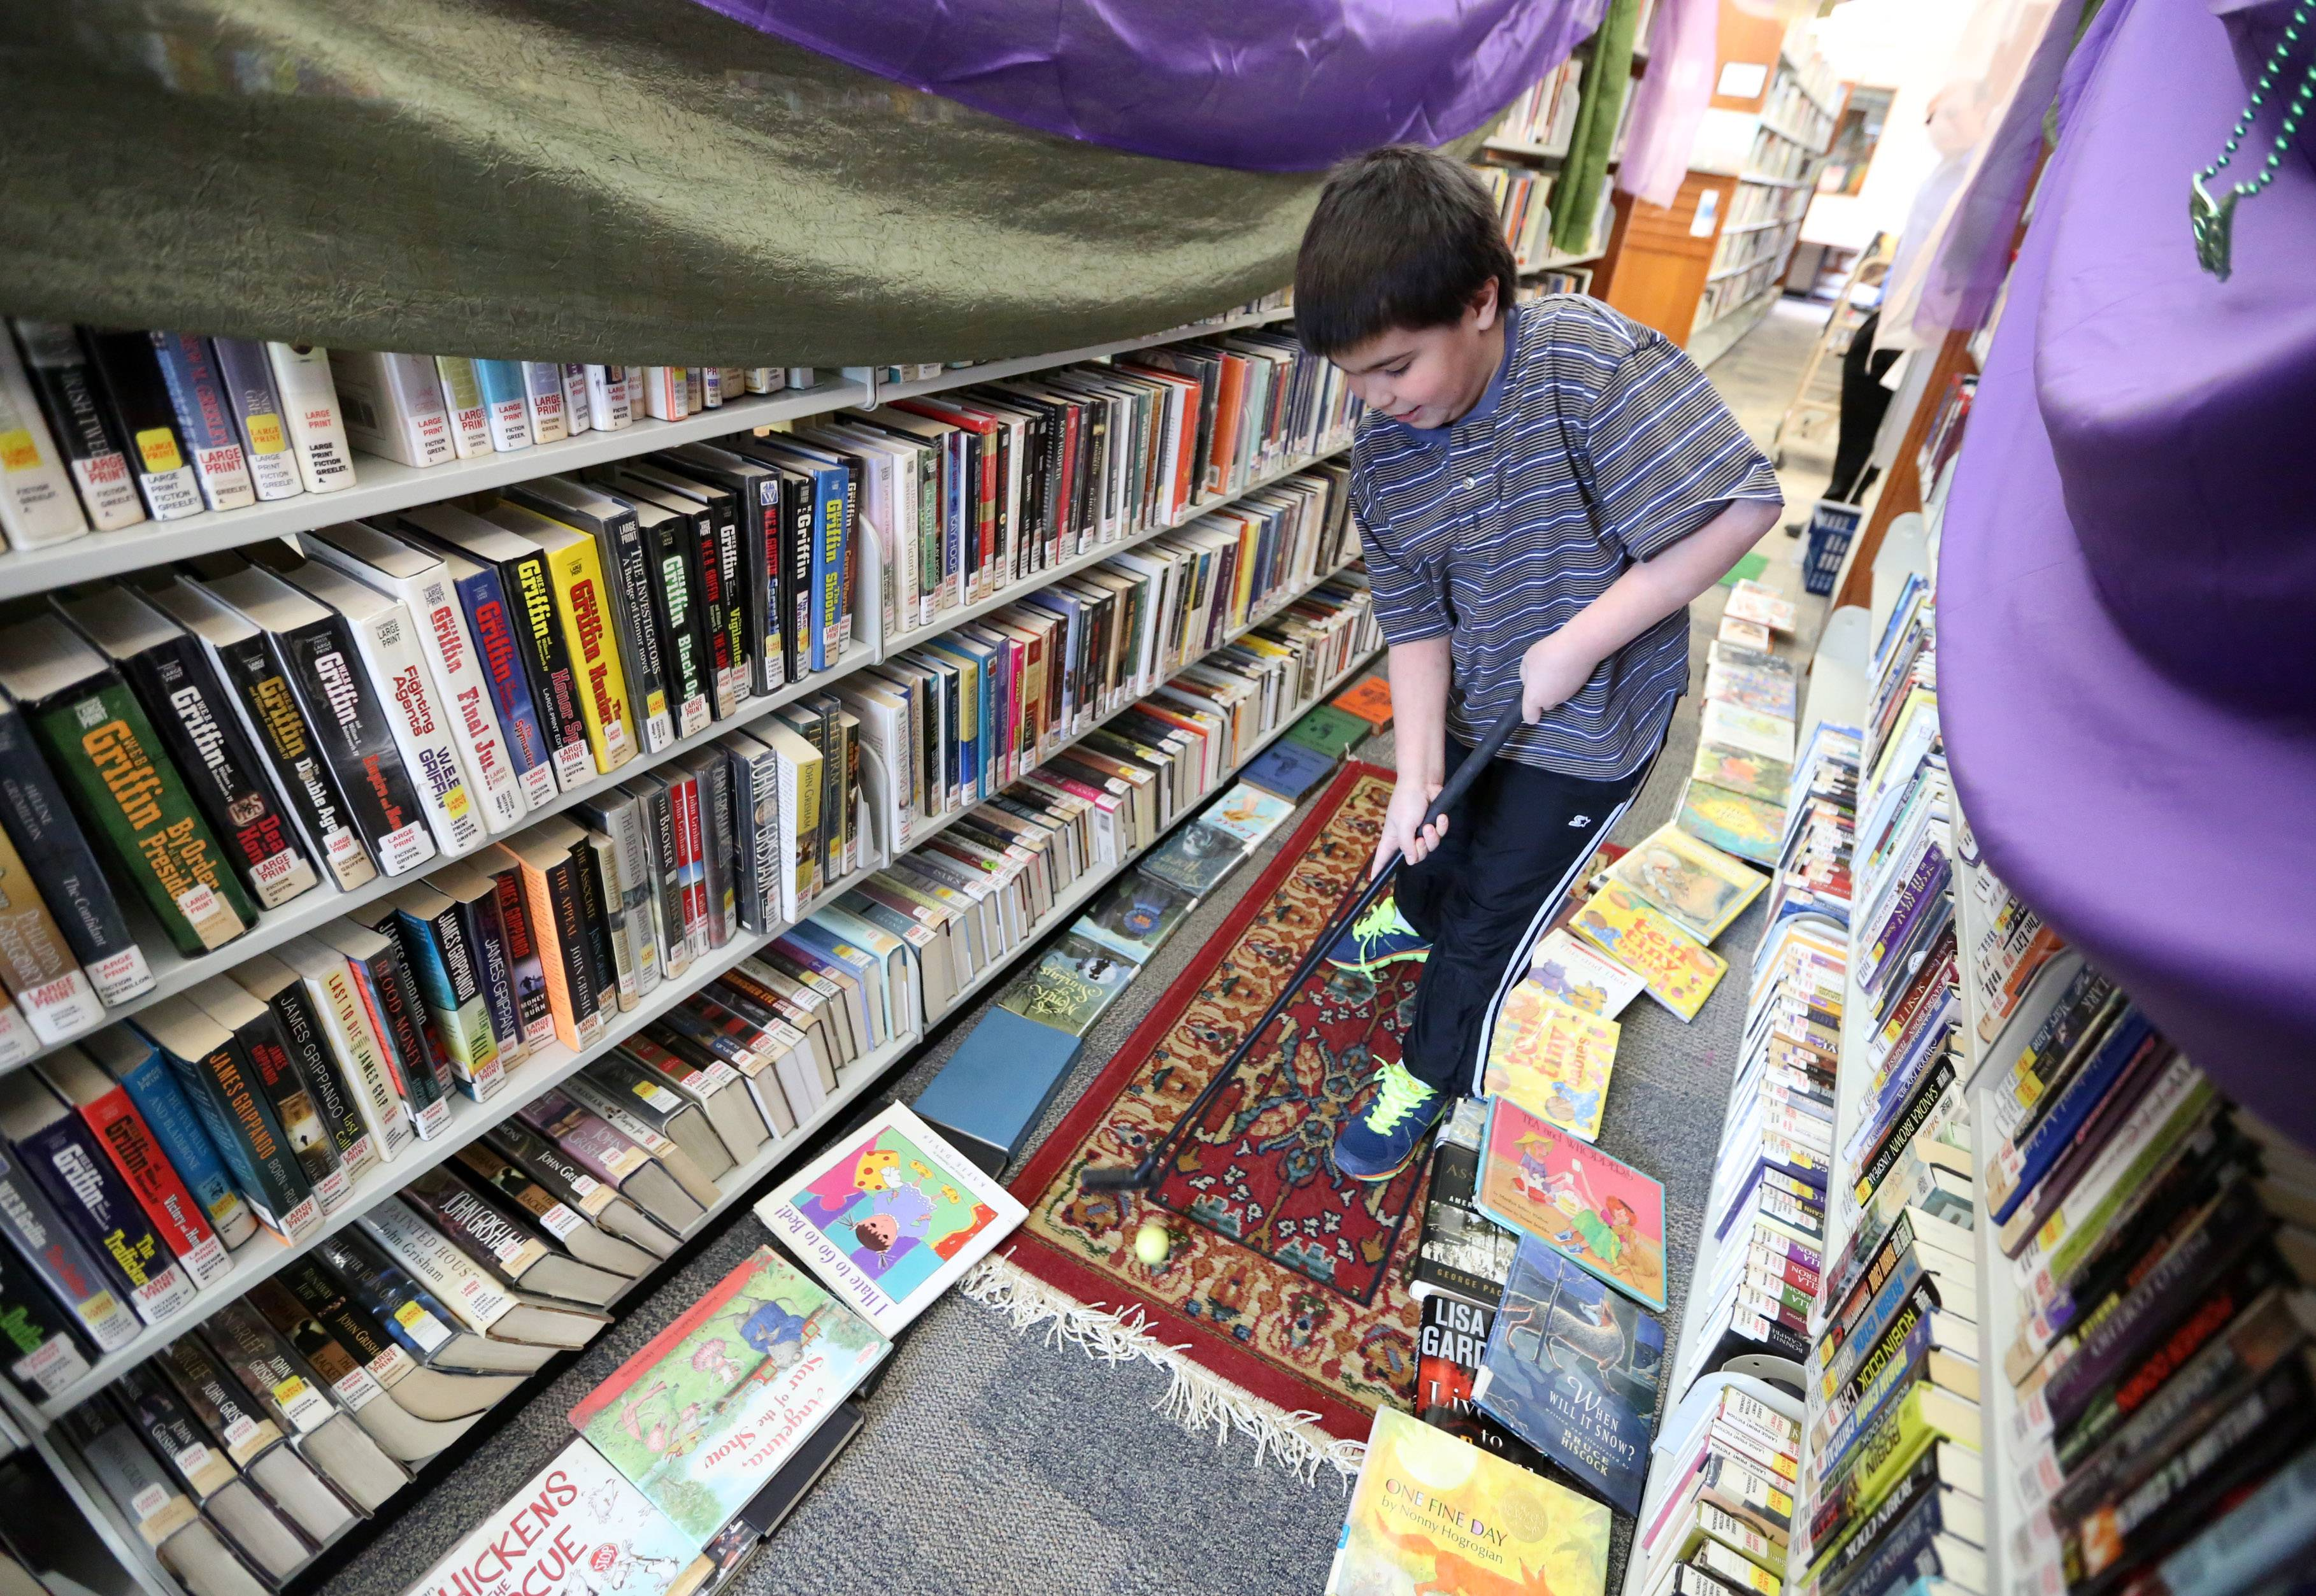 Zachary Krakow, 10, of Grayslake putts through a book aisle decorated with drapery to resemble an entry to a castle during mini-golf inside the Grayslake Area Public Library on Saturday in Grayslake.